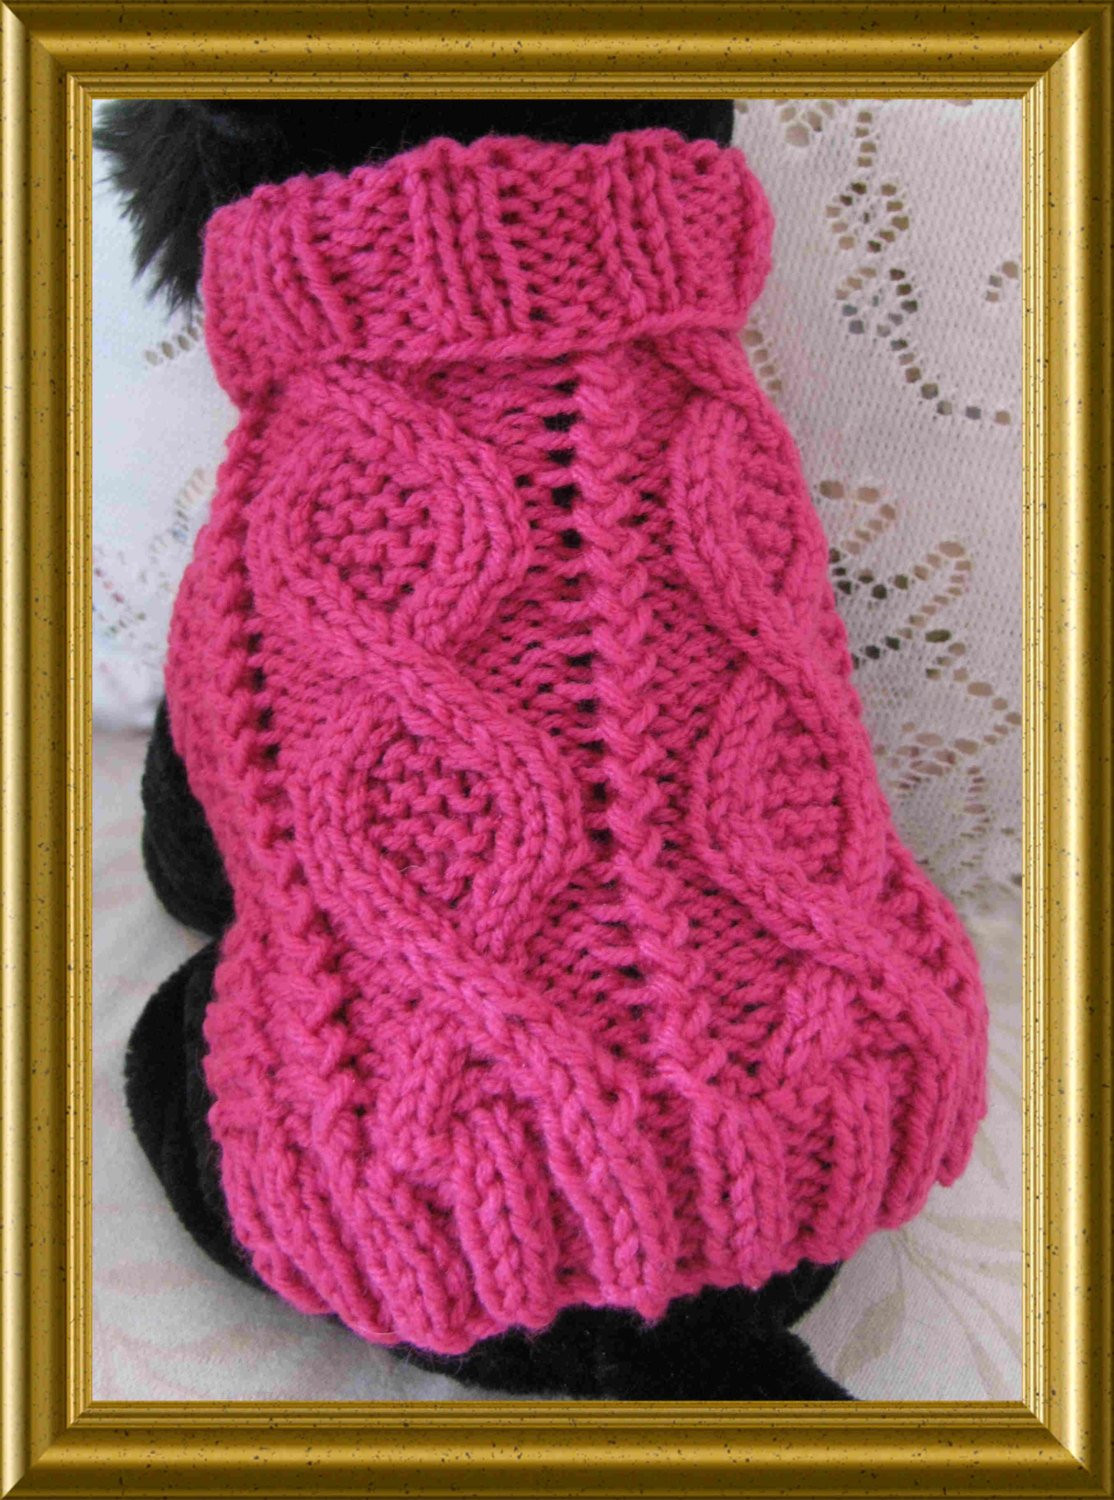 Unique Dog Sweater Knitting Pattern Aran Twists Called Entwined Paths Easy Knit Dog Sweater Of Charming 49 Ideas Easy Knit Dog Sweater